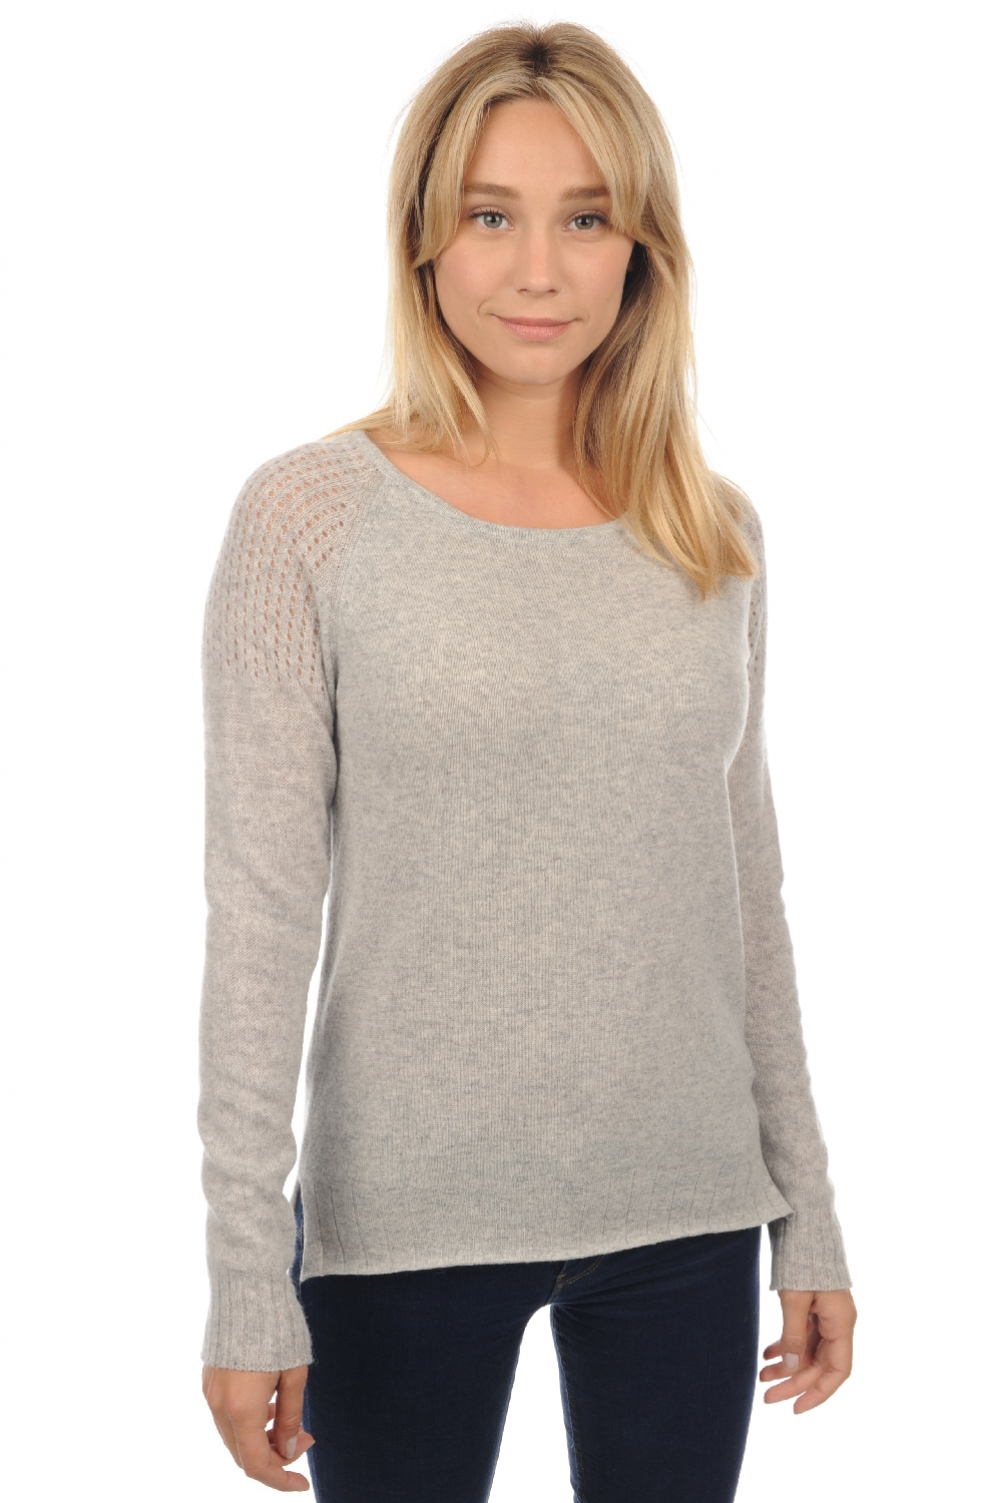 Cachemire pull femme col rond oona flanelle chine s